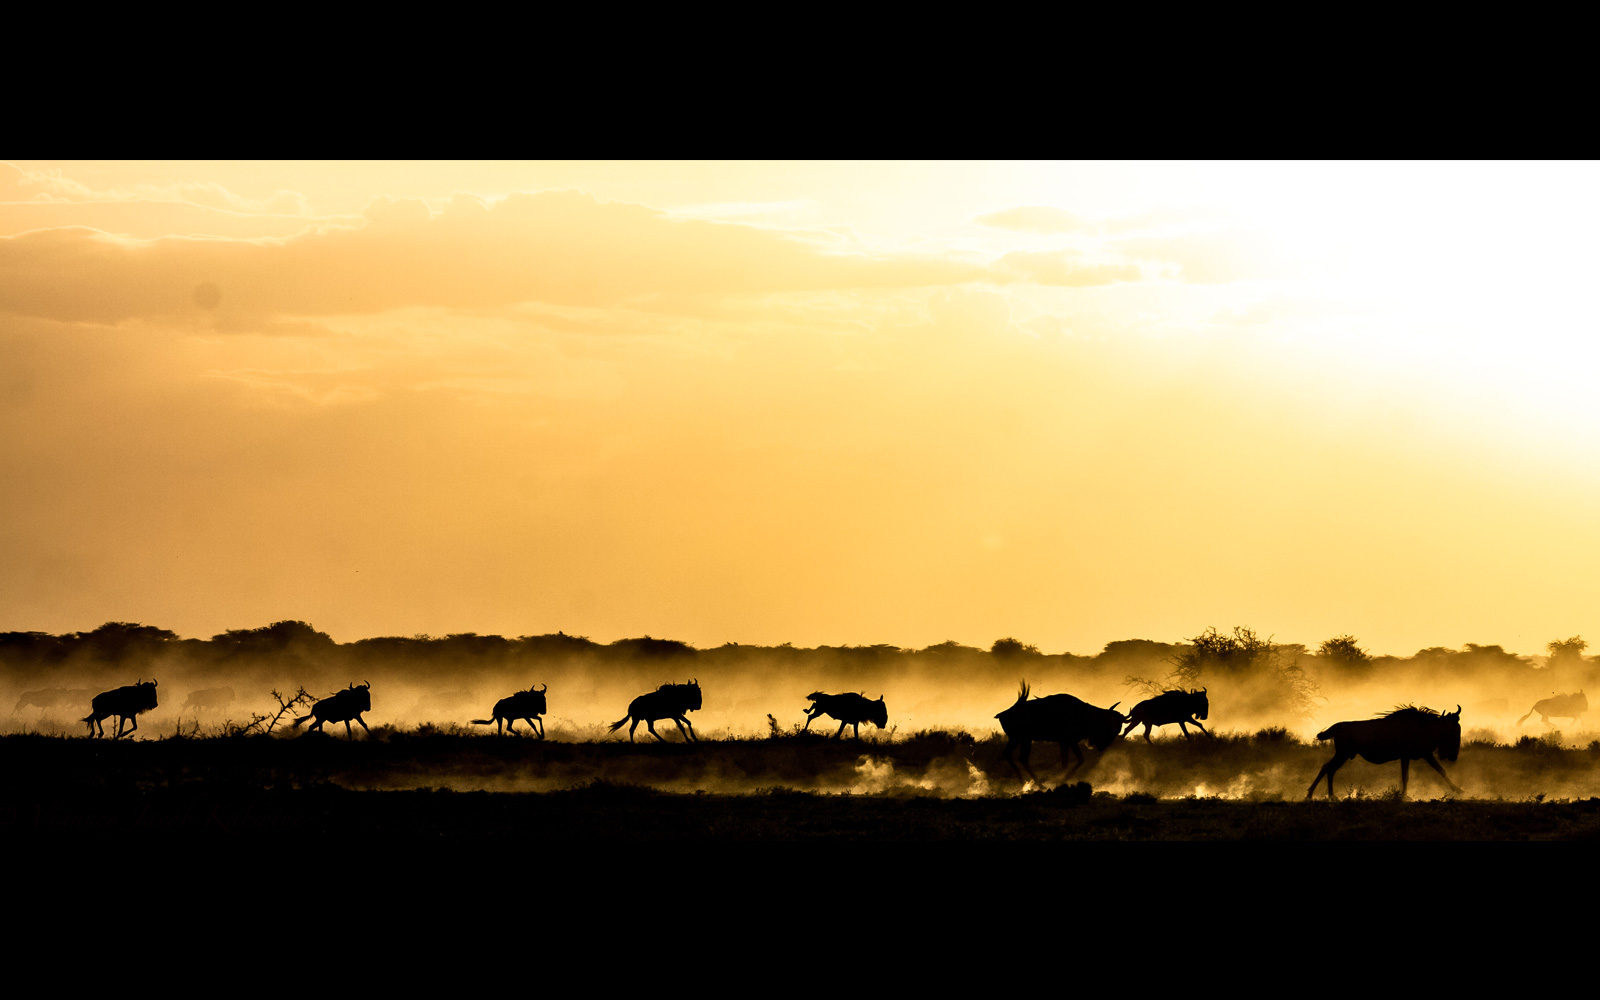 African wild dogs hunting the wildebeests as the sun sets, Maswa Game Reserve, Tanzania © Vianney Jacob Kabwine (Instagram/vianney_jacob)